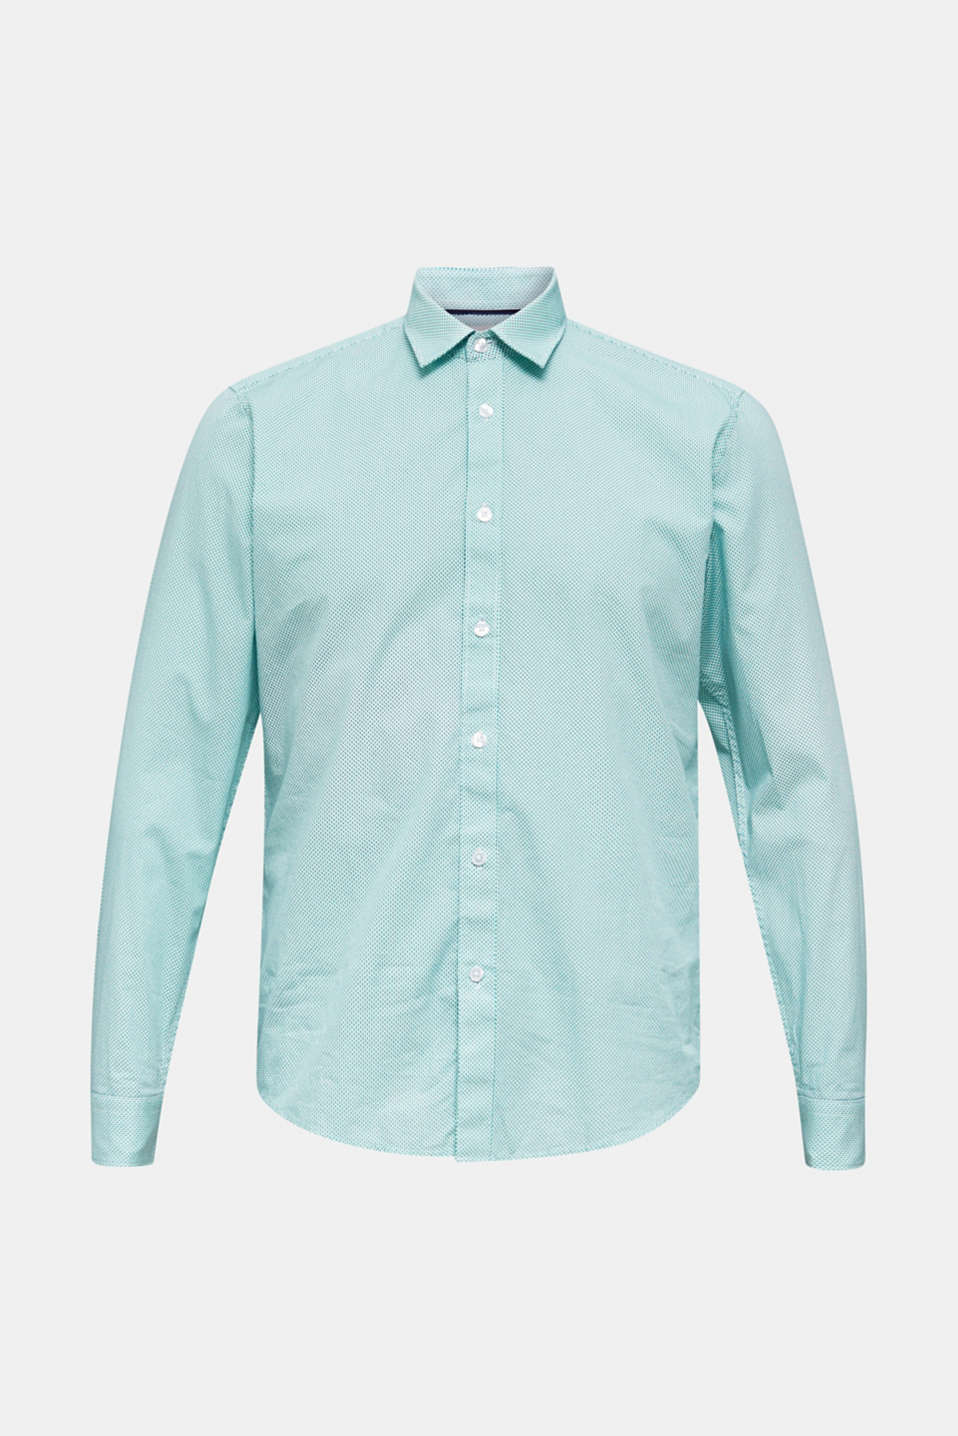 Esprit - Textured shirt made of 100% cotton